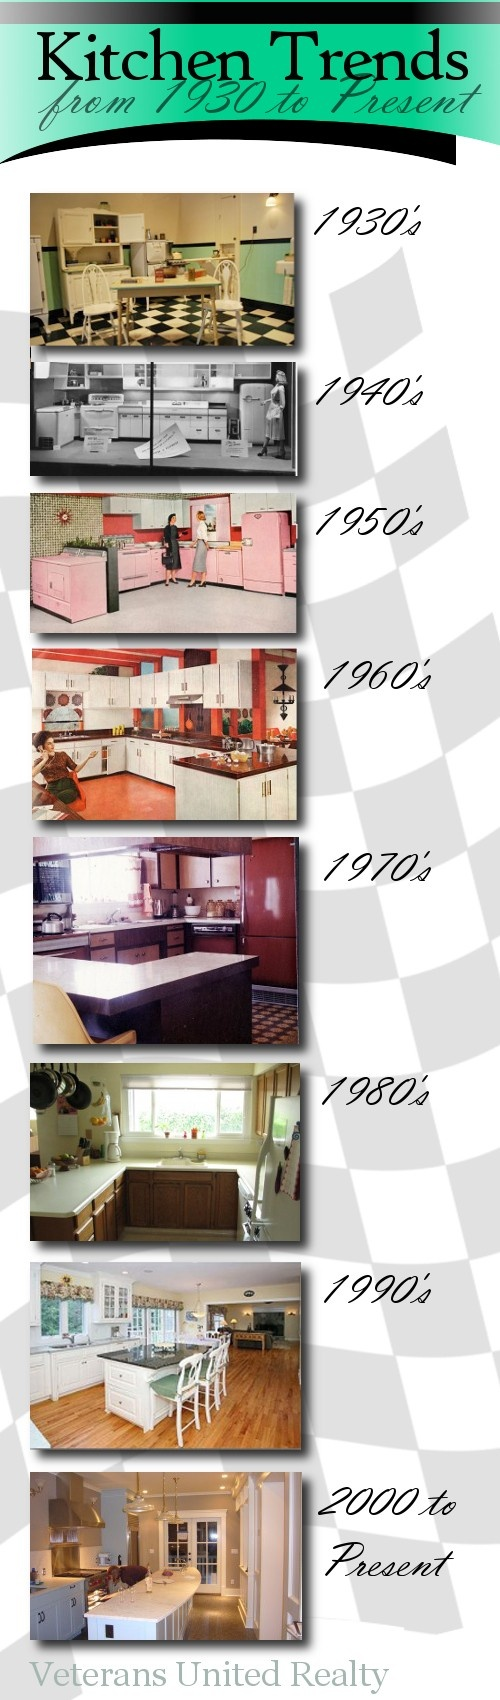 Kitchen Trends and how they have changed in America from 1930 til now.